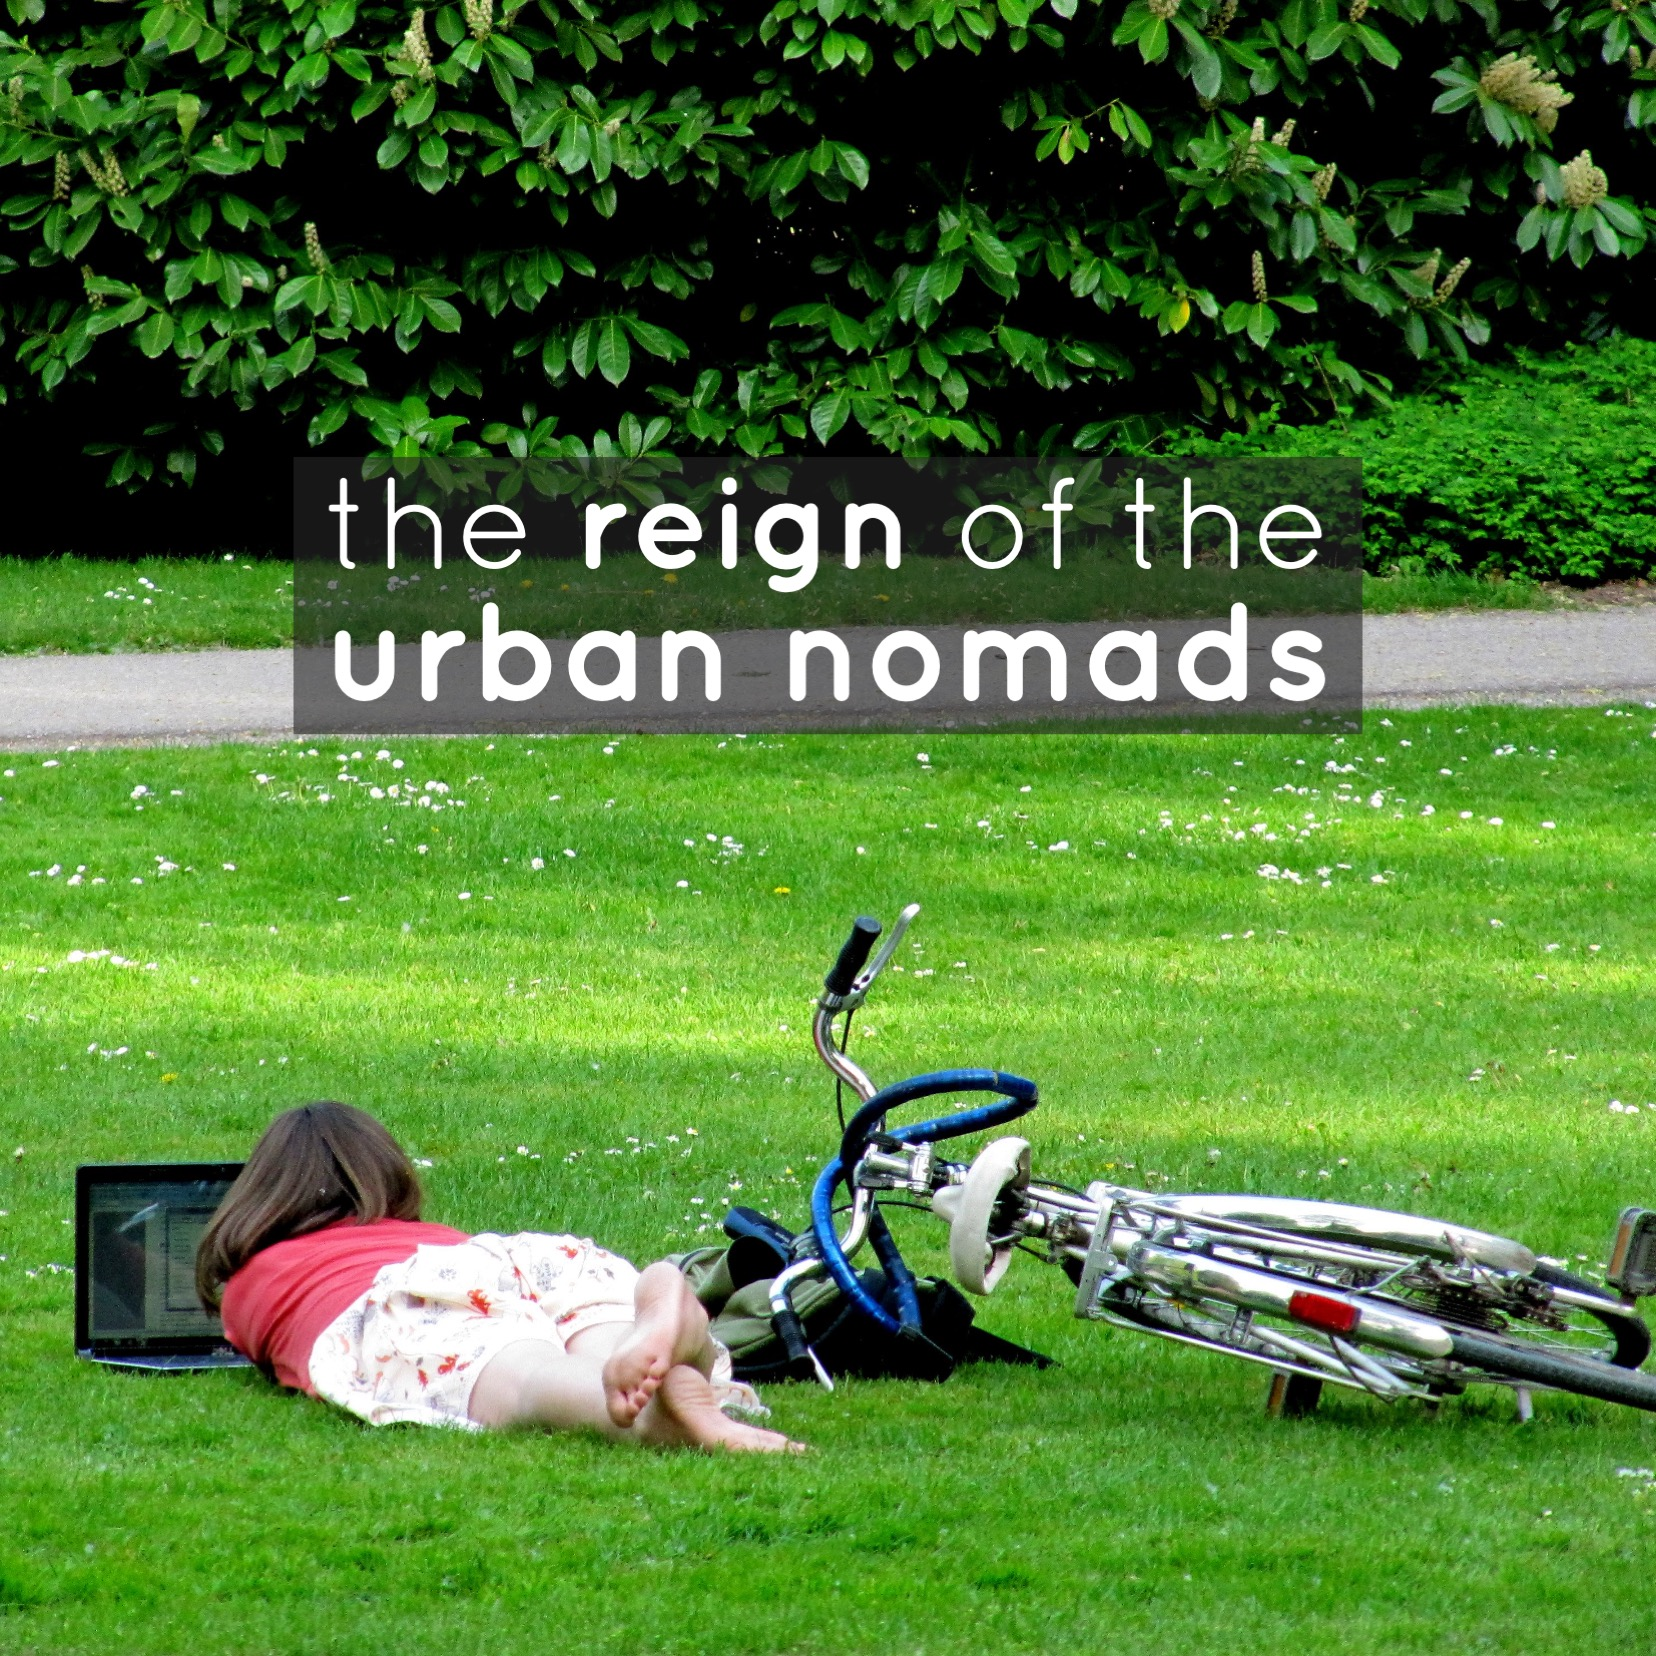 Behavioral Trends: The Reign of the Urban Nomads